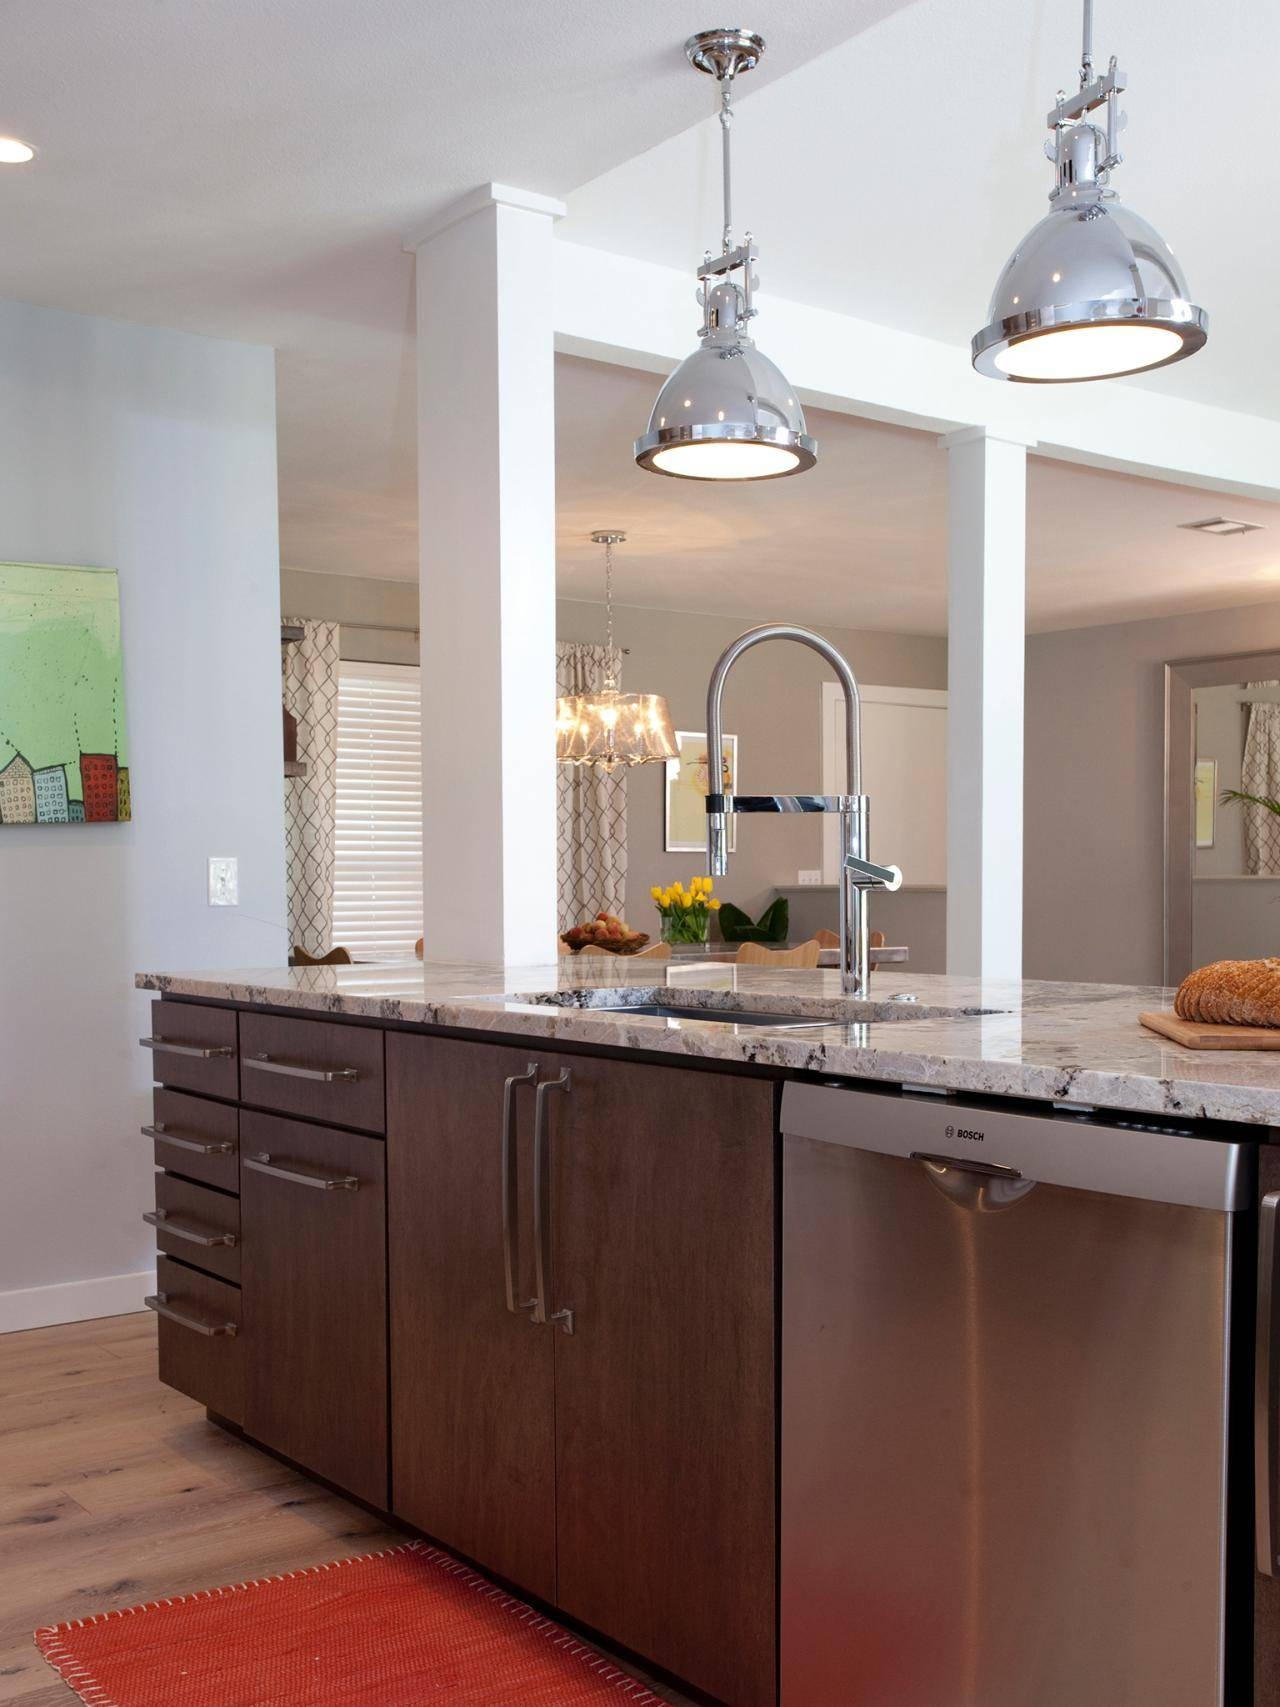 Stainless Steel Kitchen Light Fixtures – Aneilve intended for Stainless Steel Pendant Lights (Image 10 of 15)